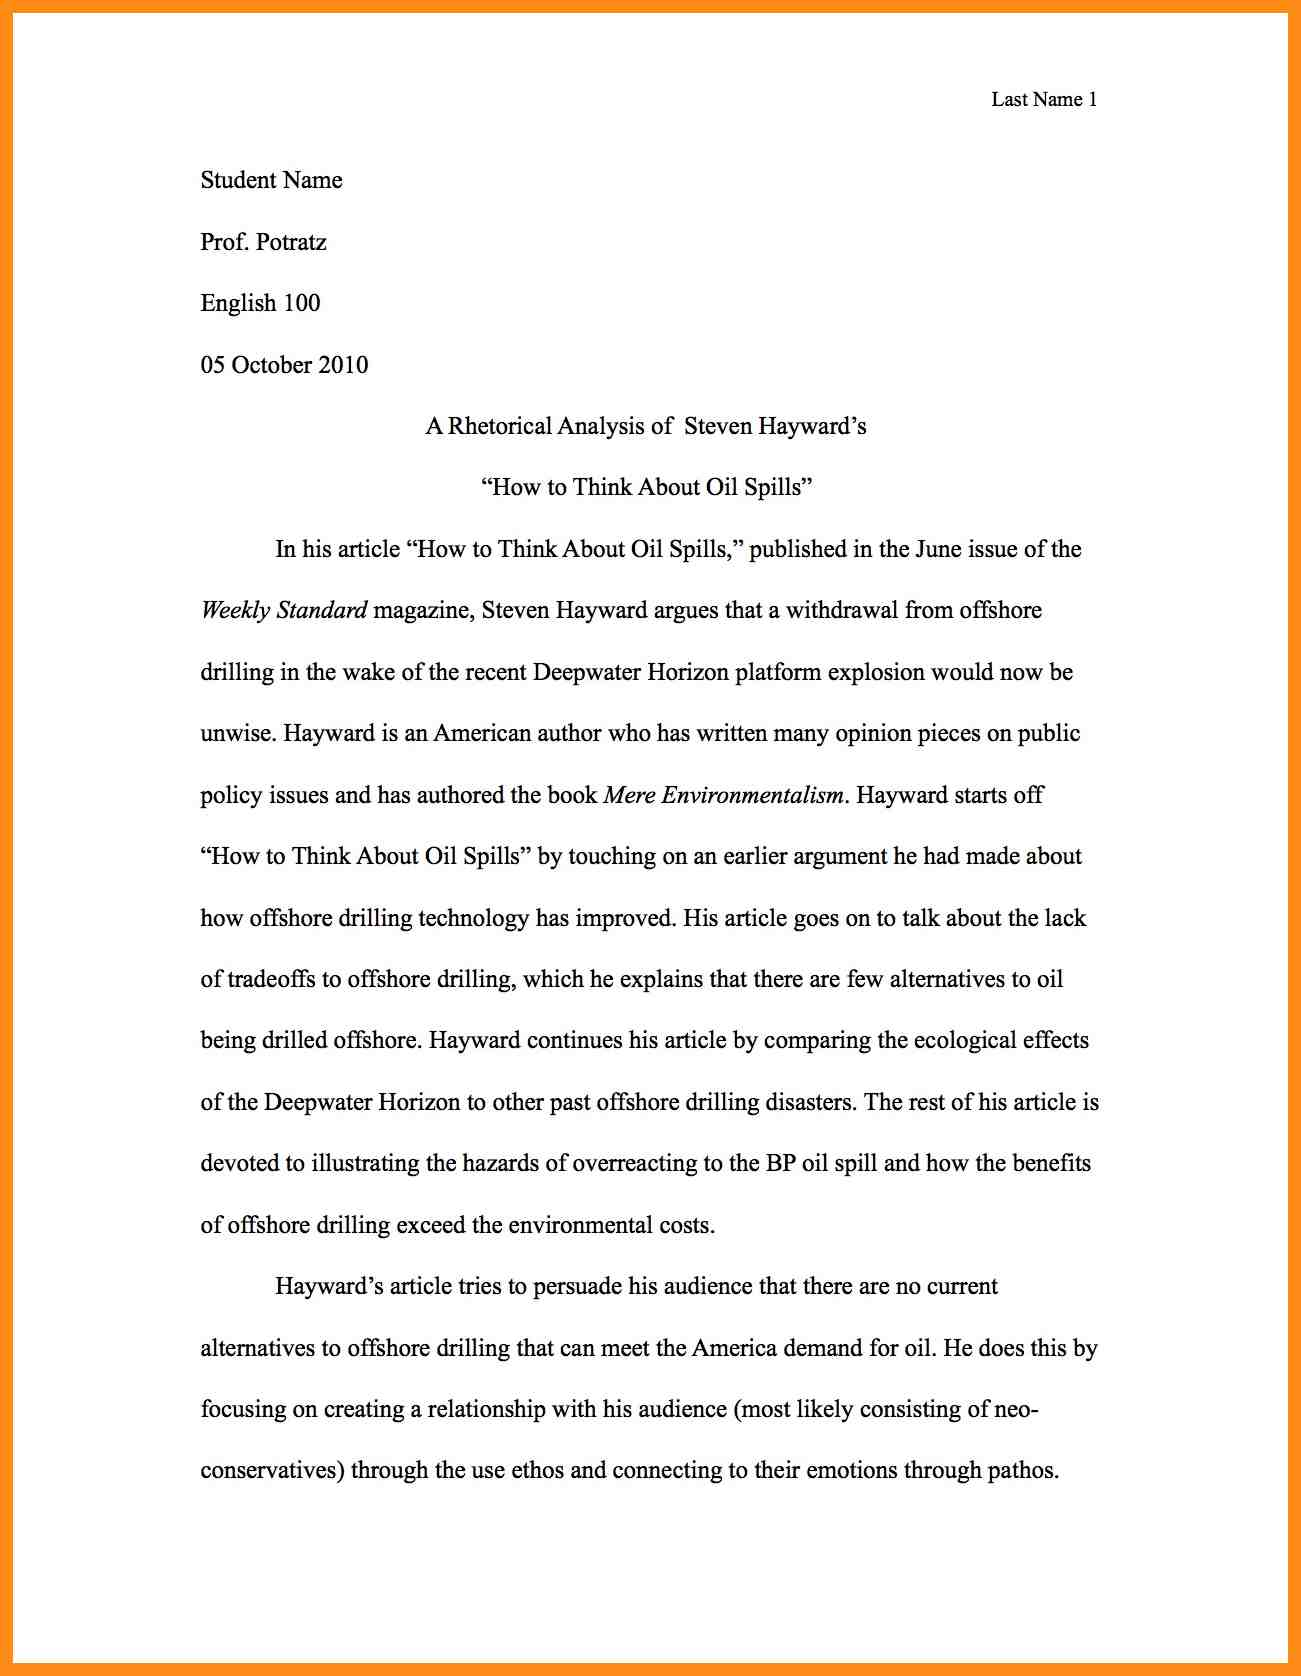 002 Write Best Rhetoricalnalysis Essay Example Of Using Ethos Pathosnd Logos Pdf What Is Frightening A Rhetorical Devices The Purpose Analysis Full